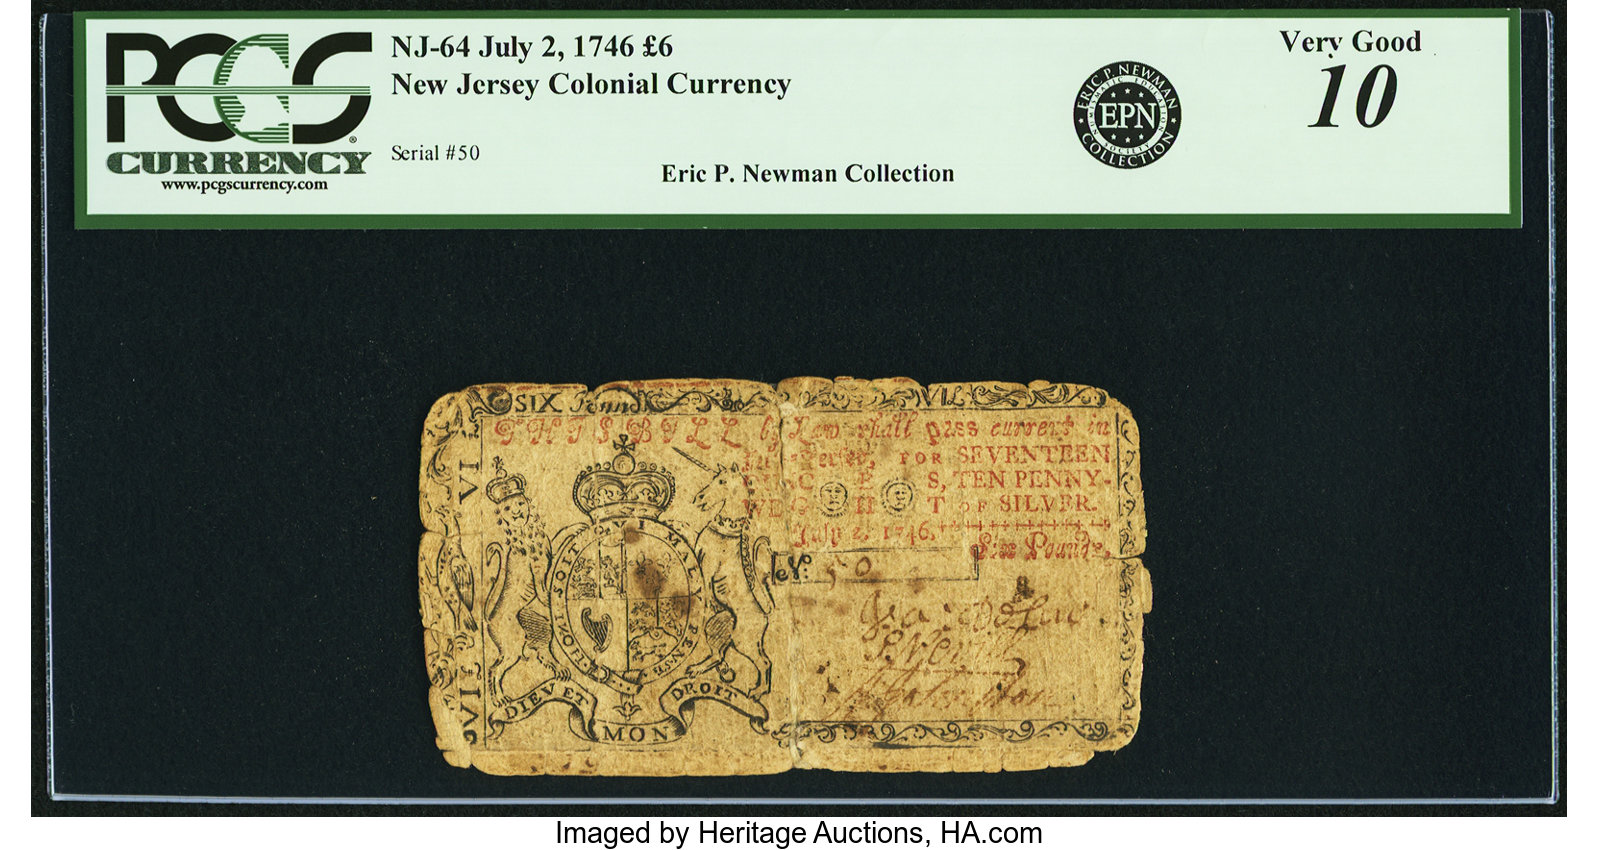 sample image for 1746